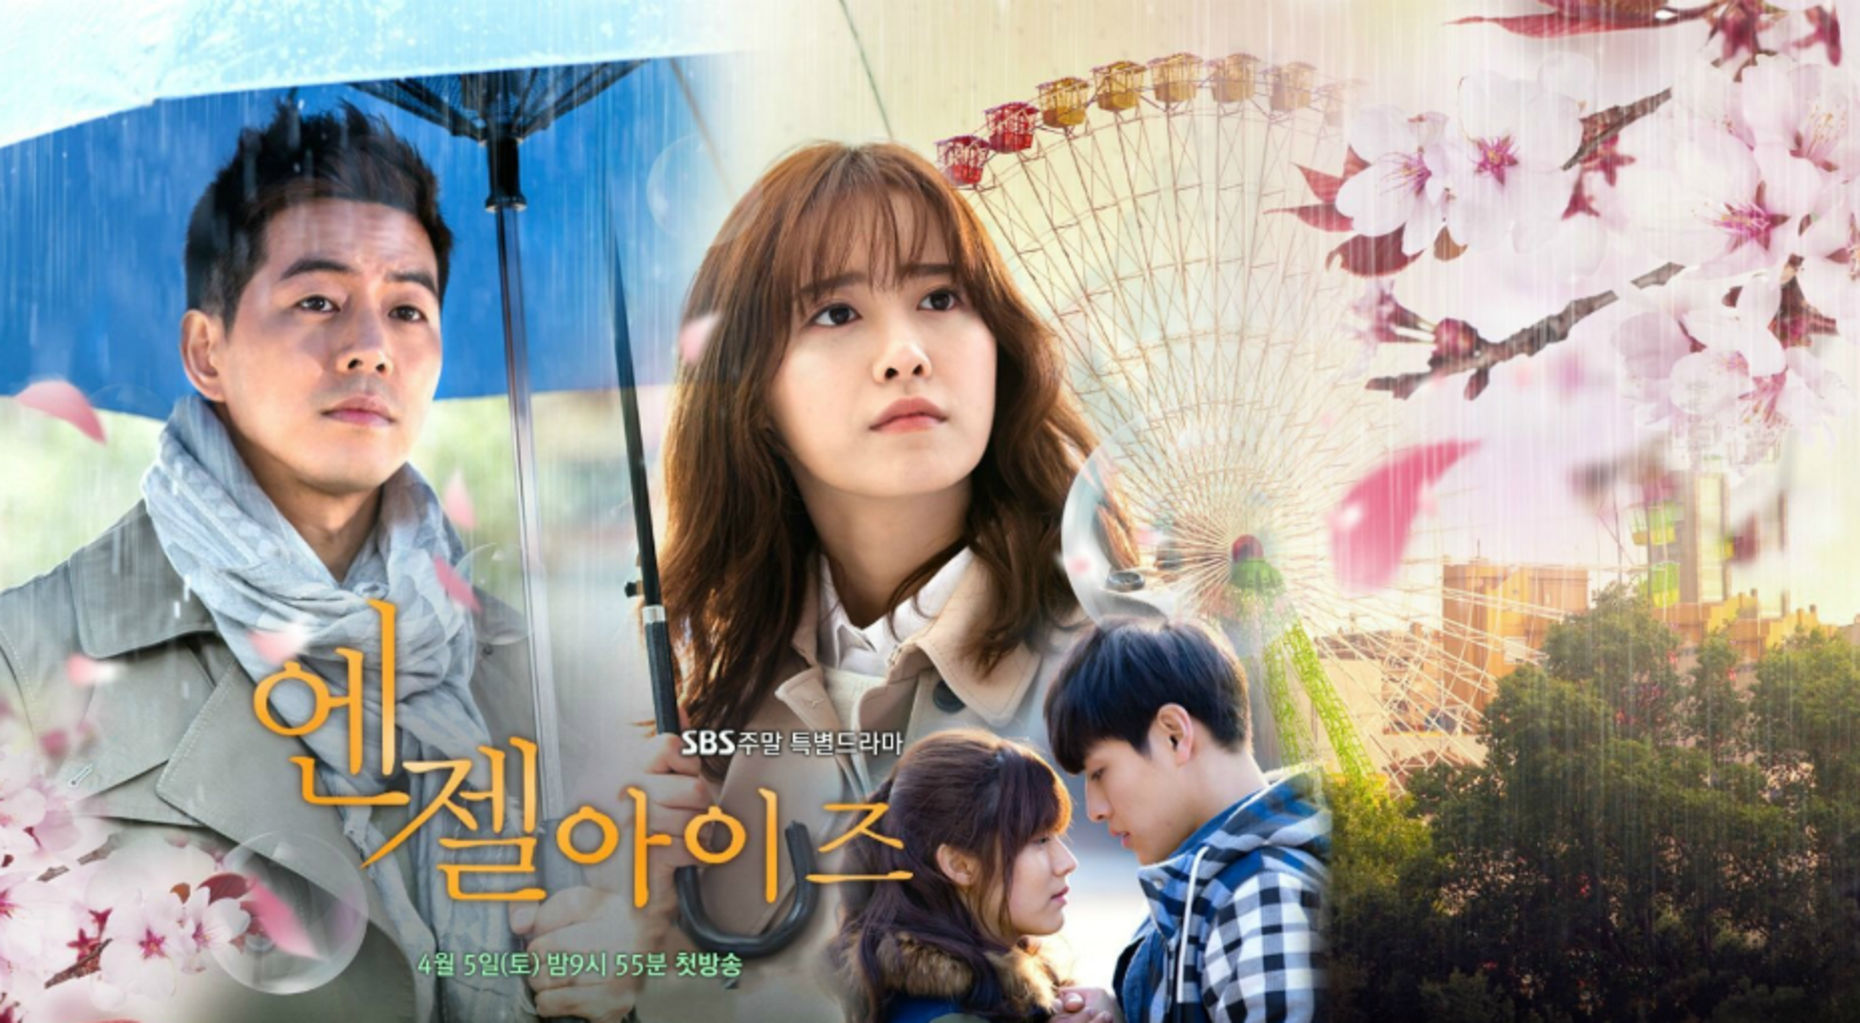 Poster for DramaFever's Korean melodrama Angel Eyes.